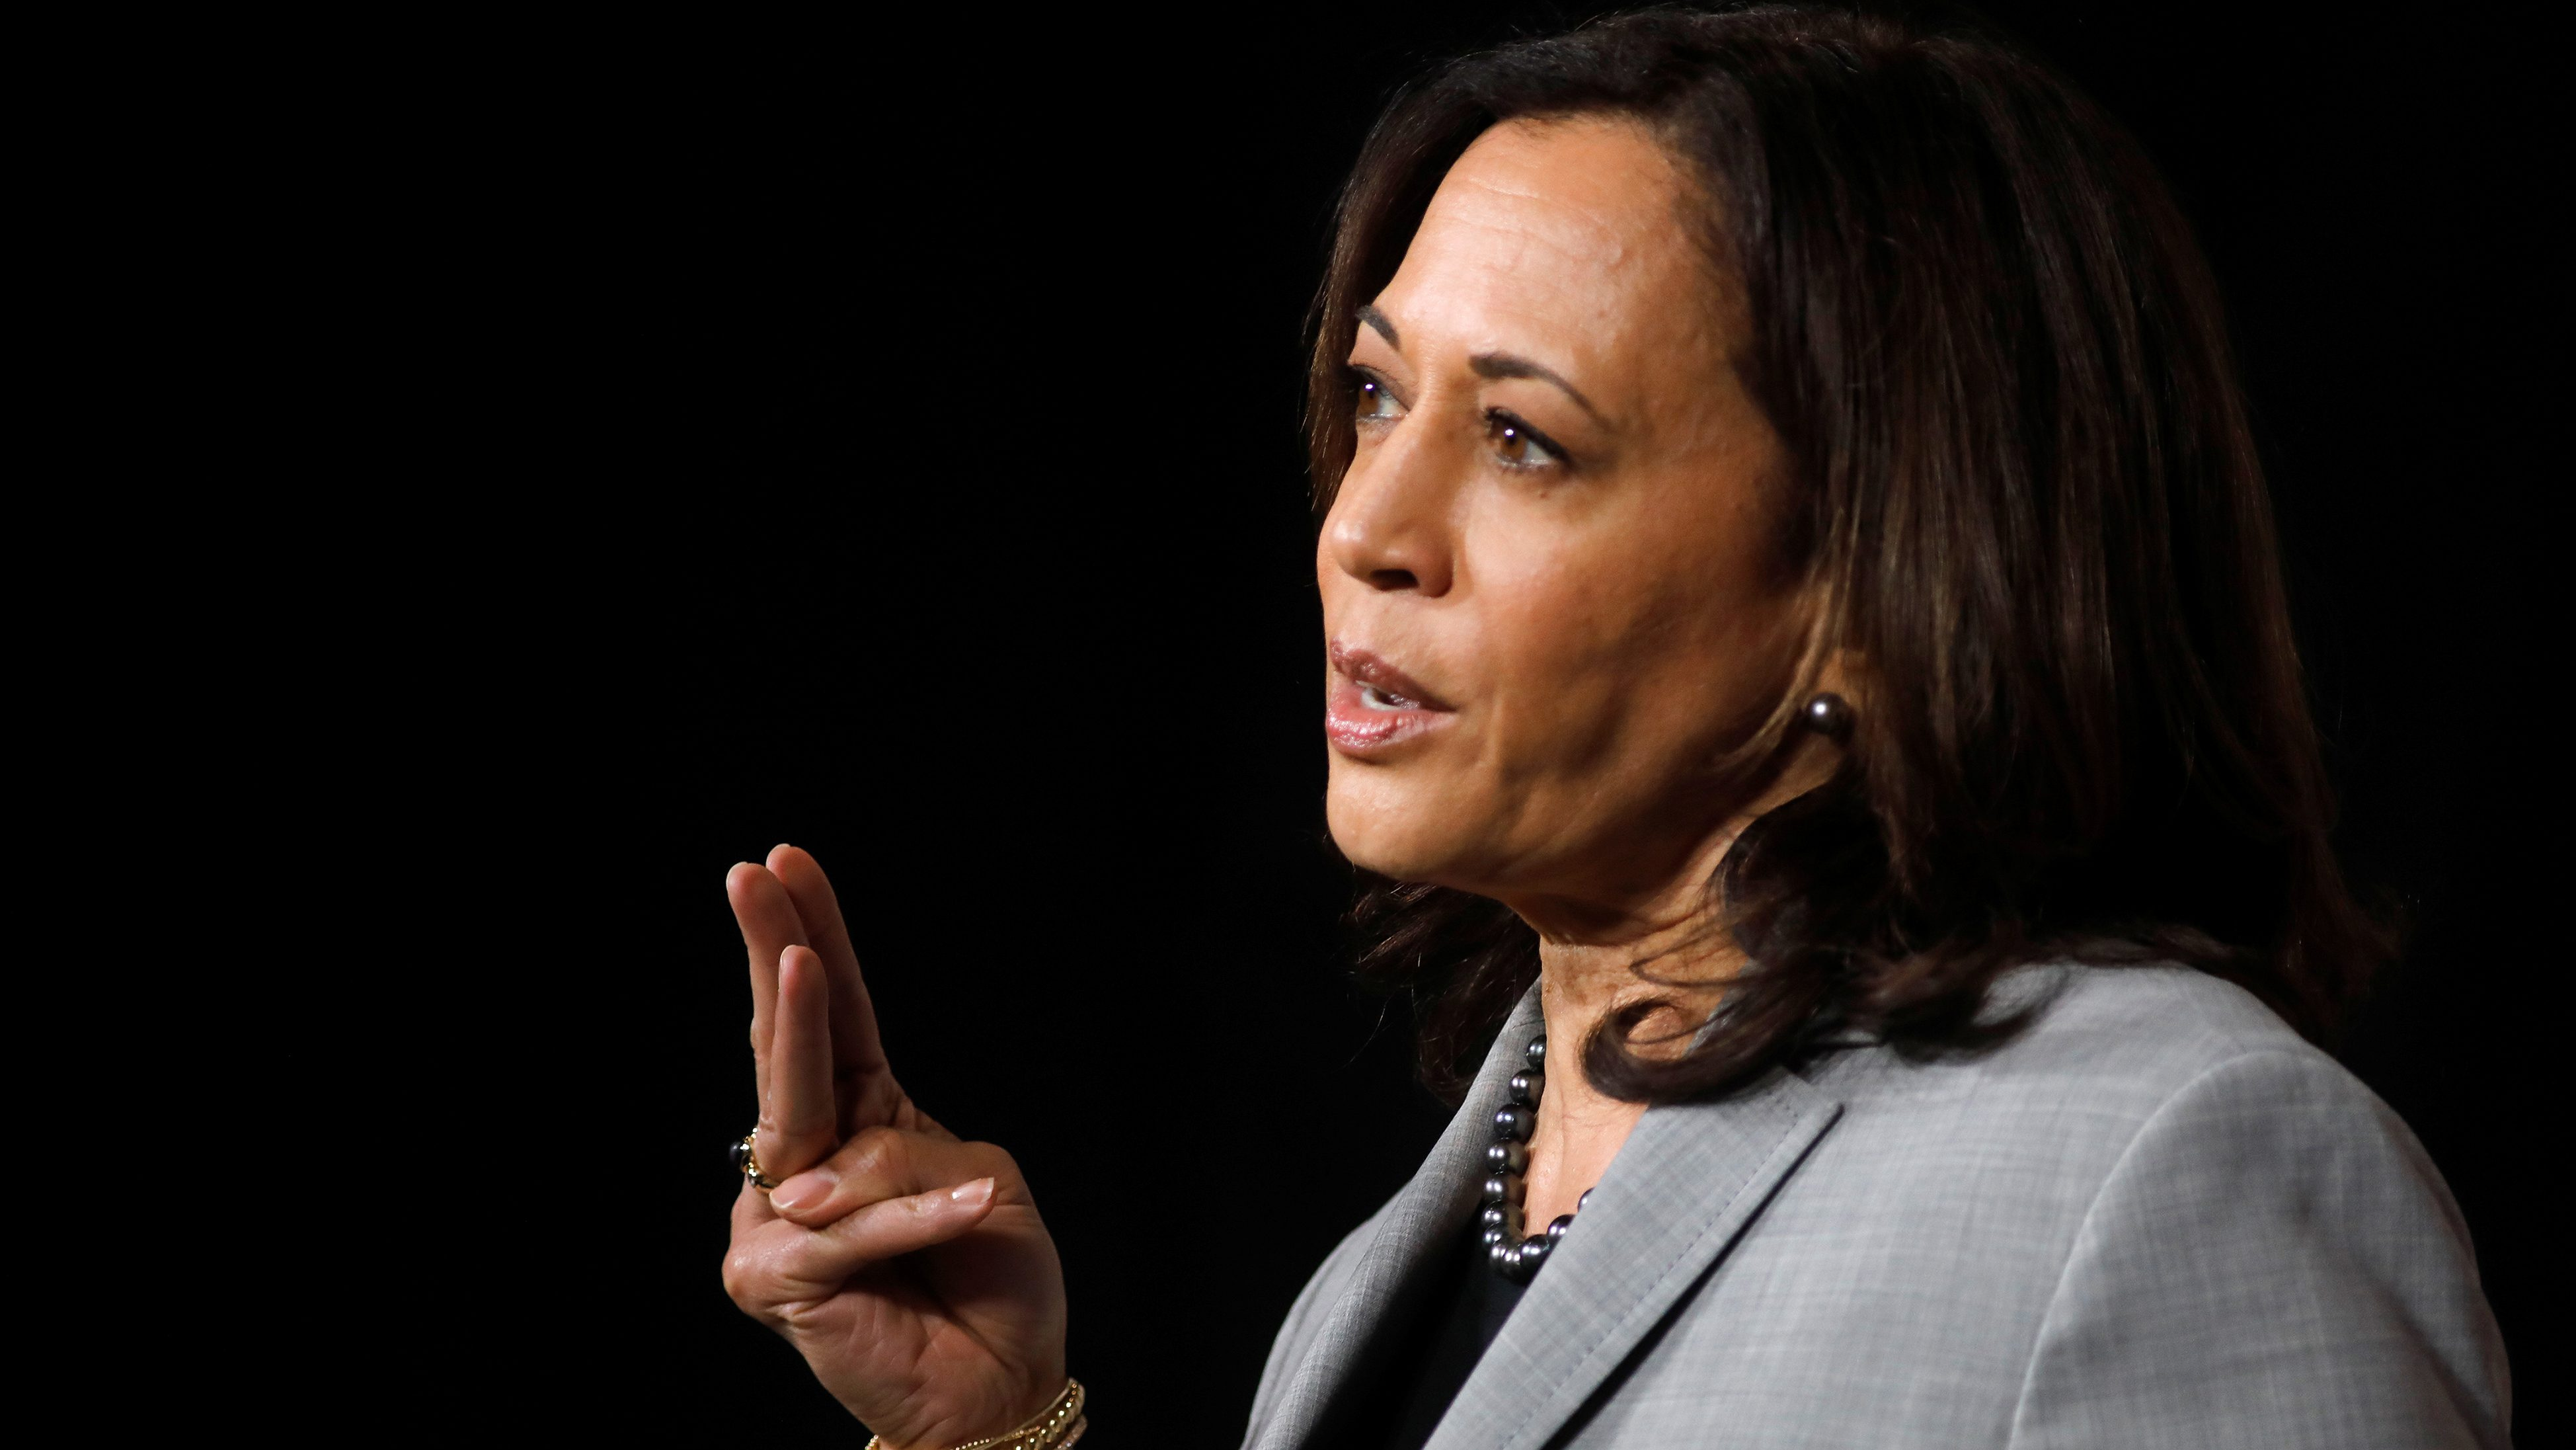 Democratic U.S. vice presidential nominee Senator Kamala Harris in Raleigh